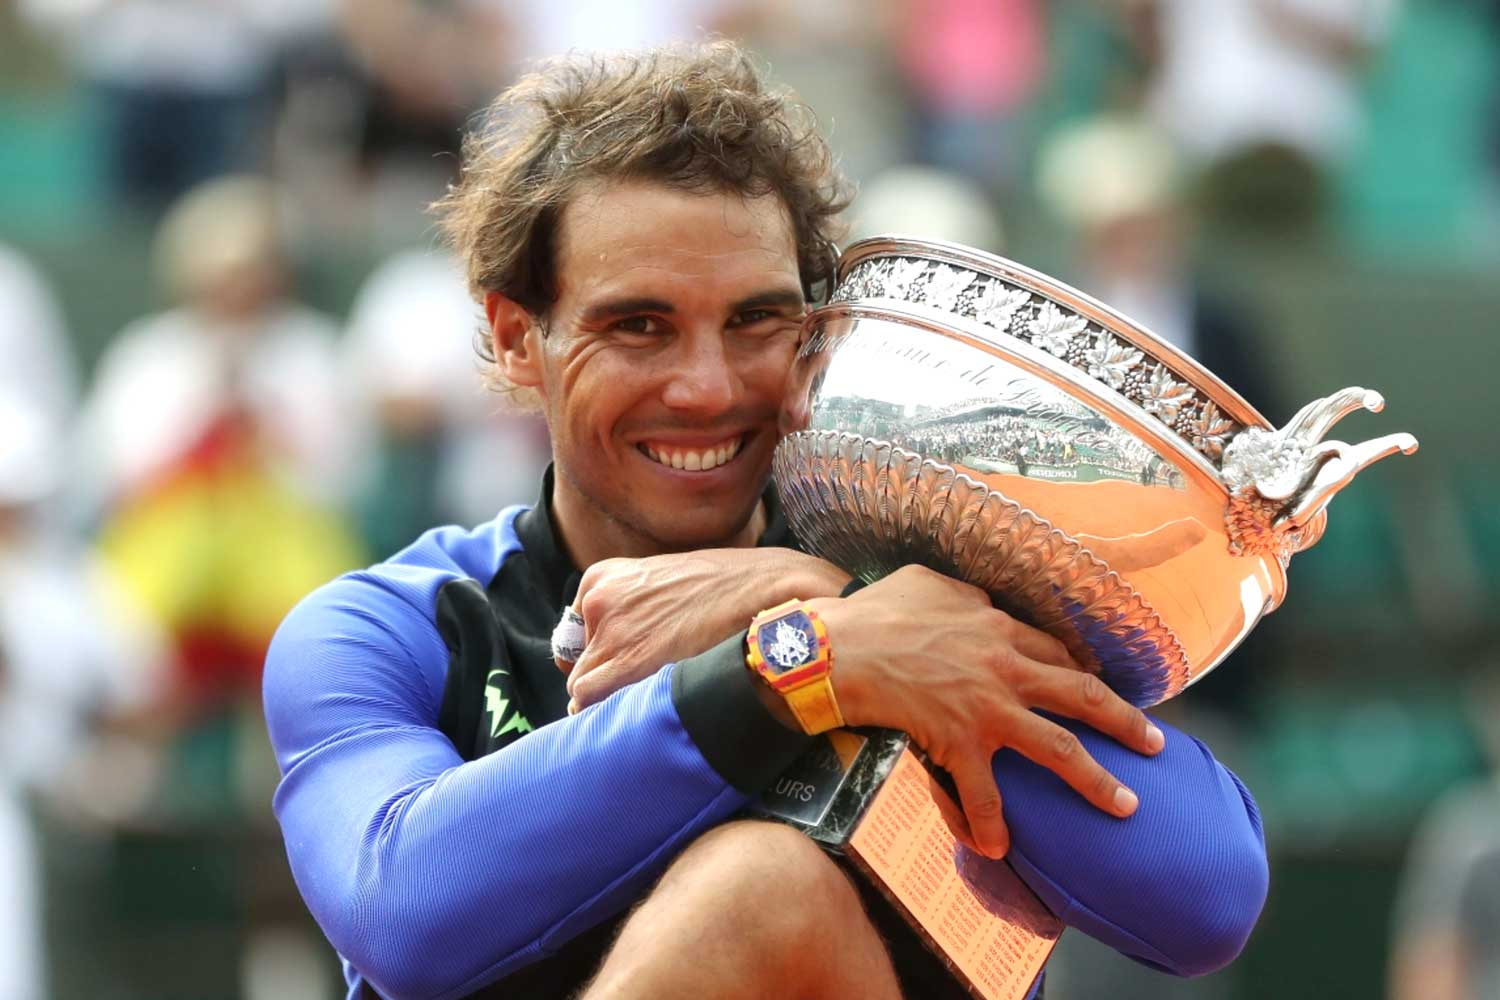 No player has dominated the French Open like Rafael Nadal. In his last six victories, he has always been accompanied by his Richard Mille watch